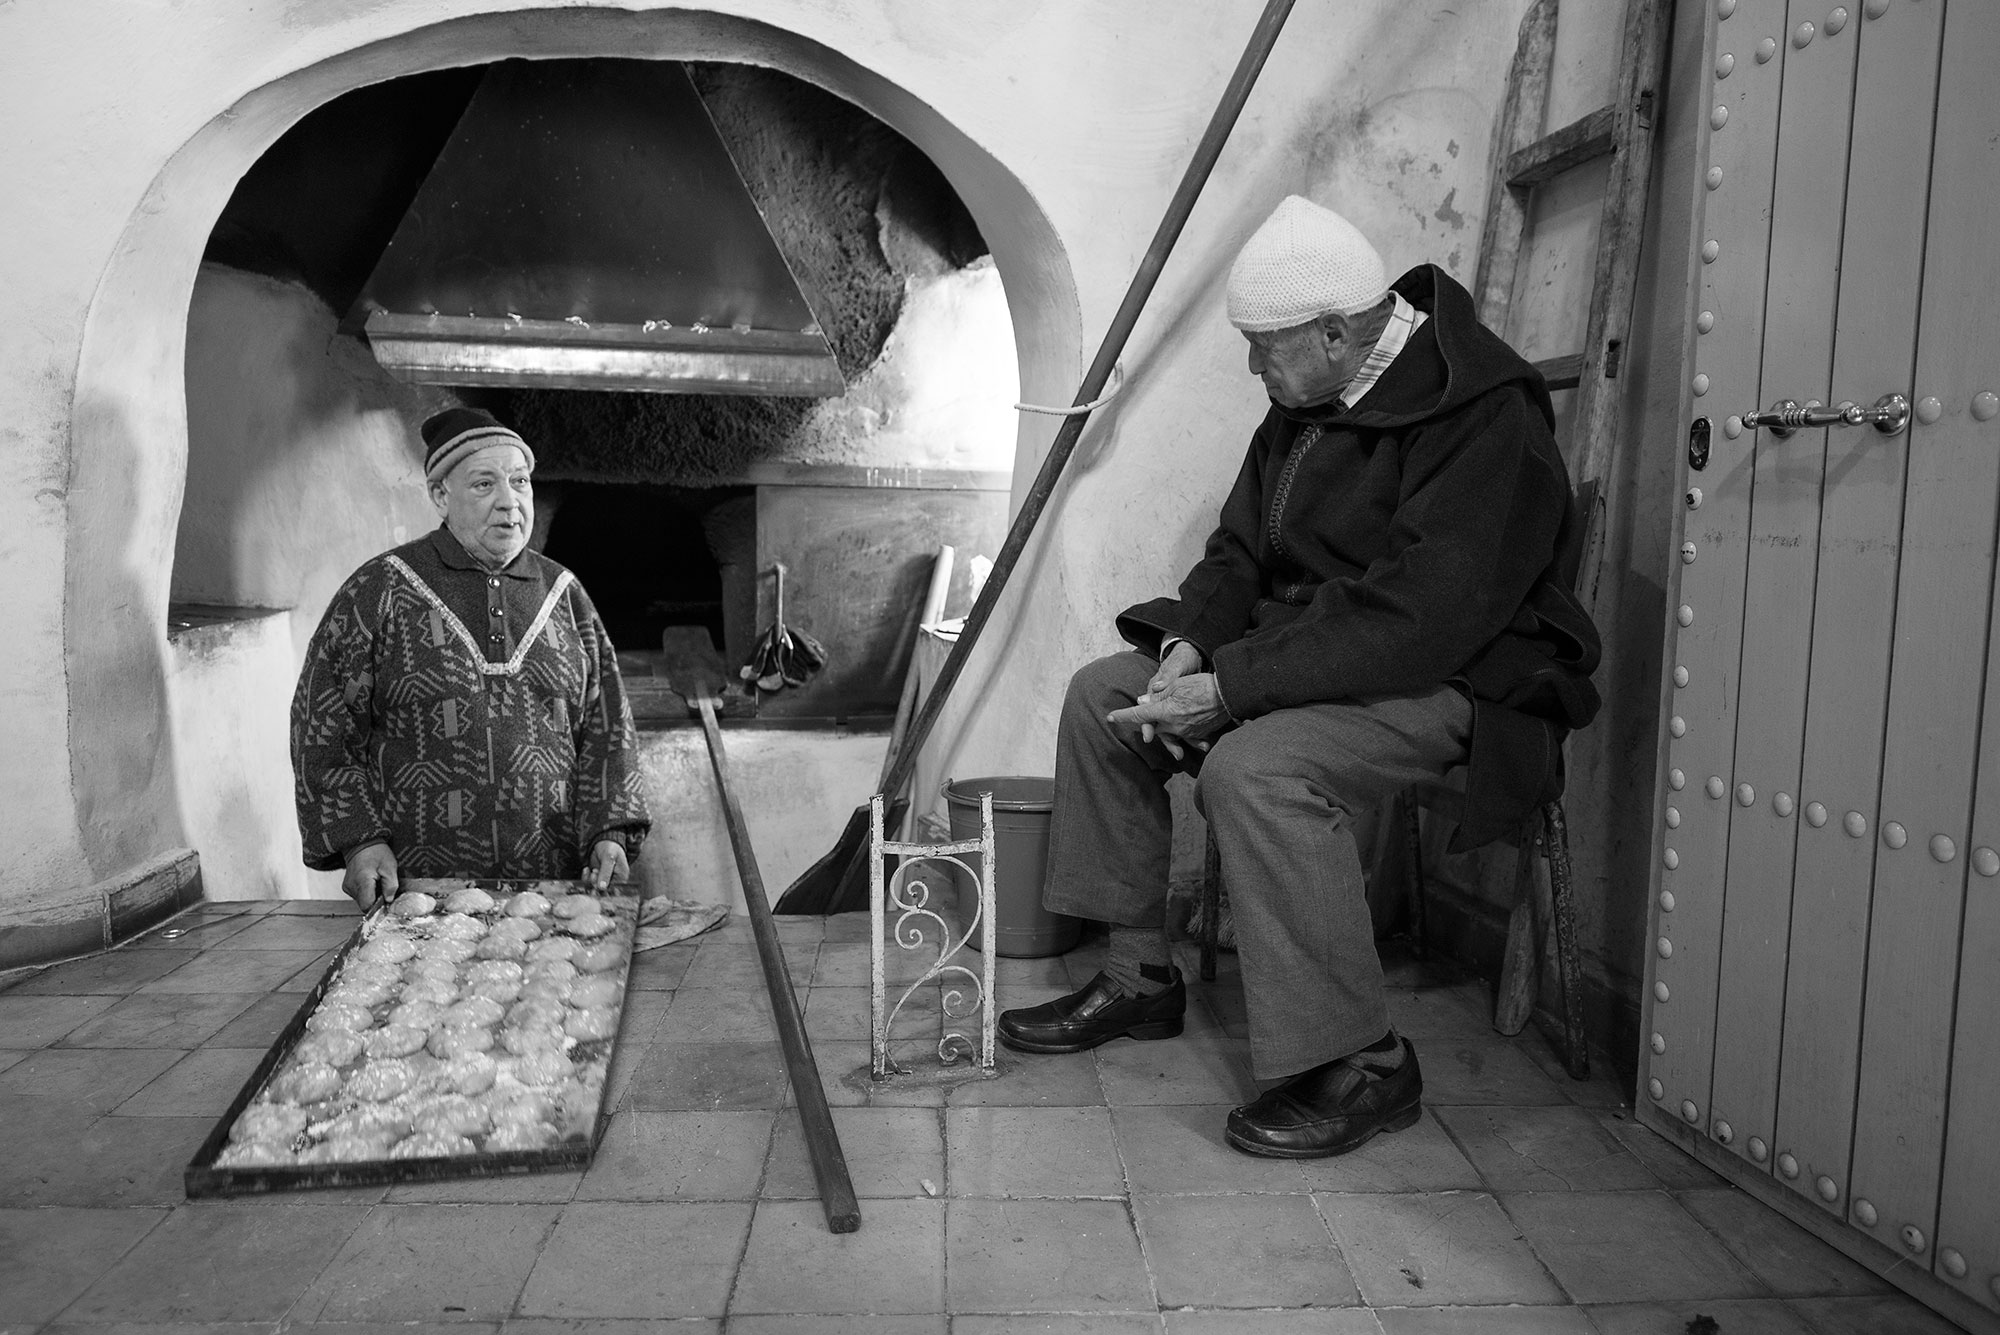 Bakery at Blue City Northern Morocco